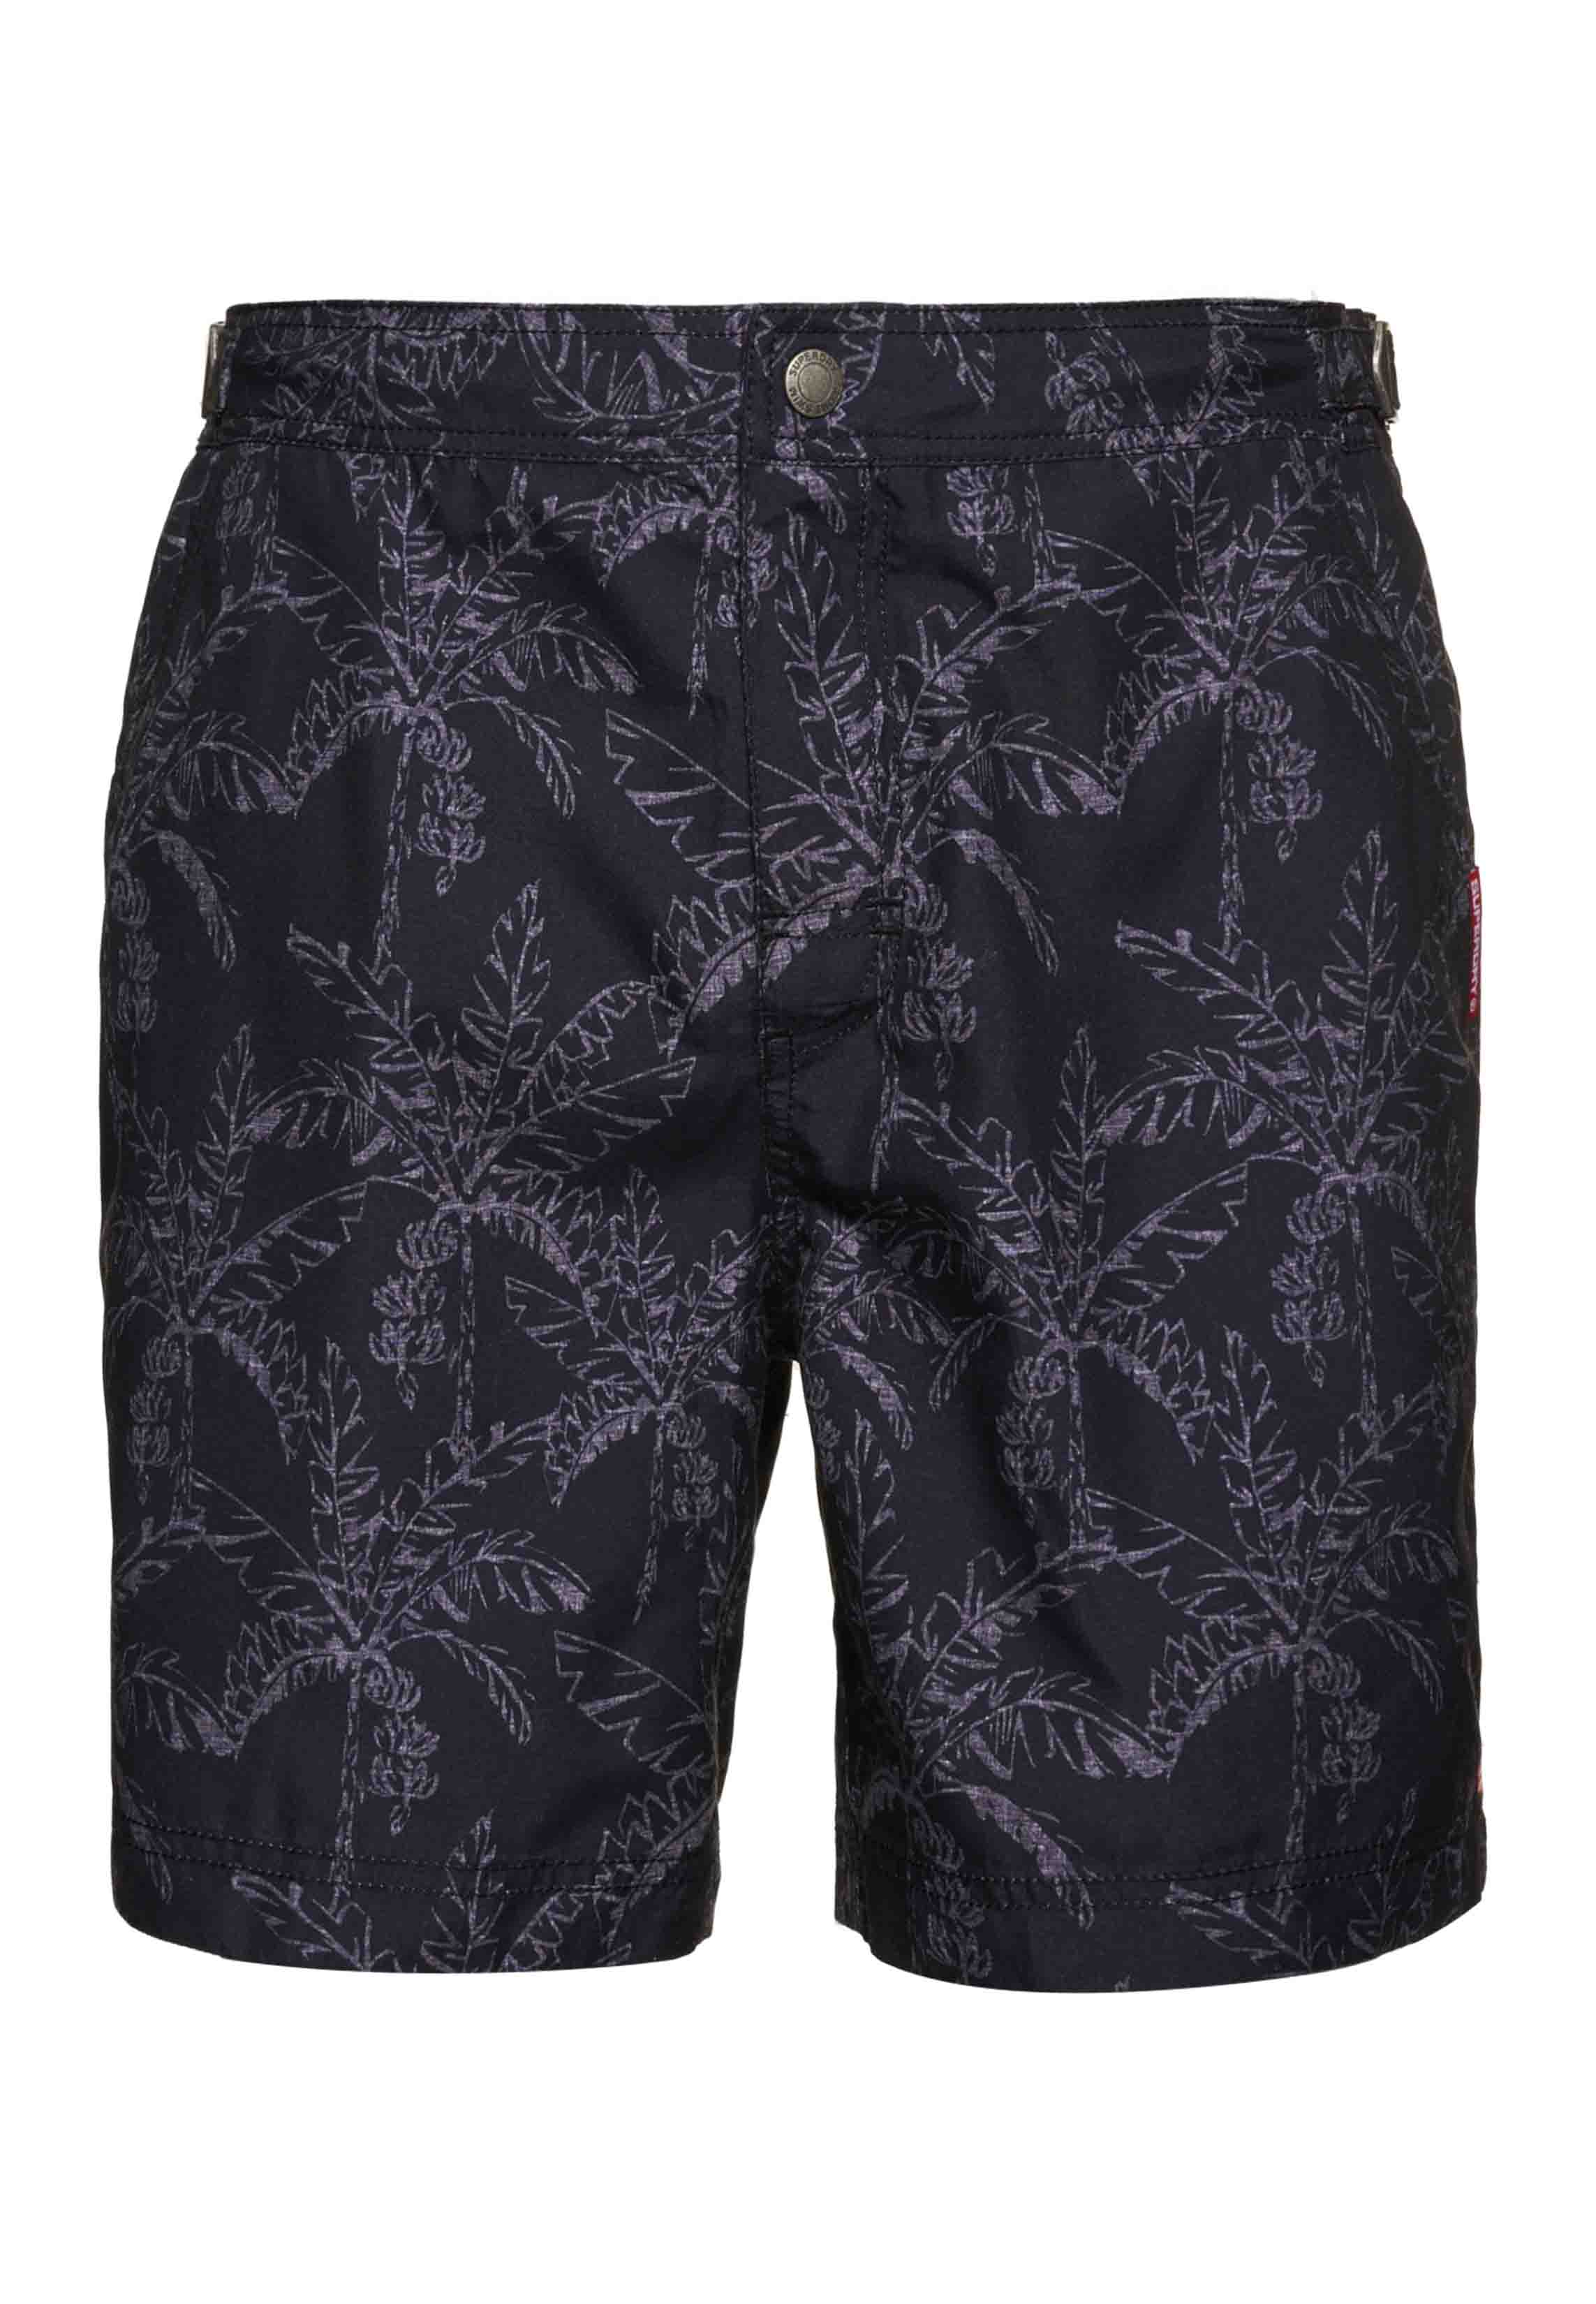 Superdry International Swim Shorts - Banana Tree - £29.99.jpg